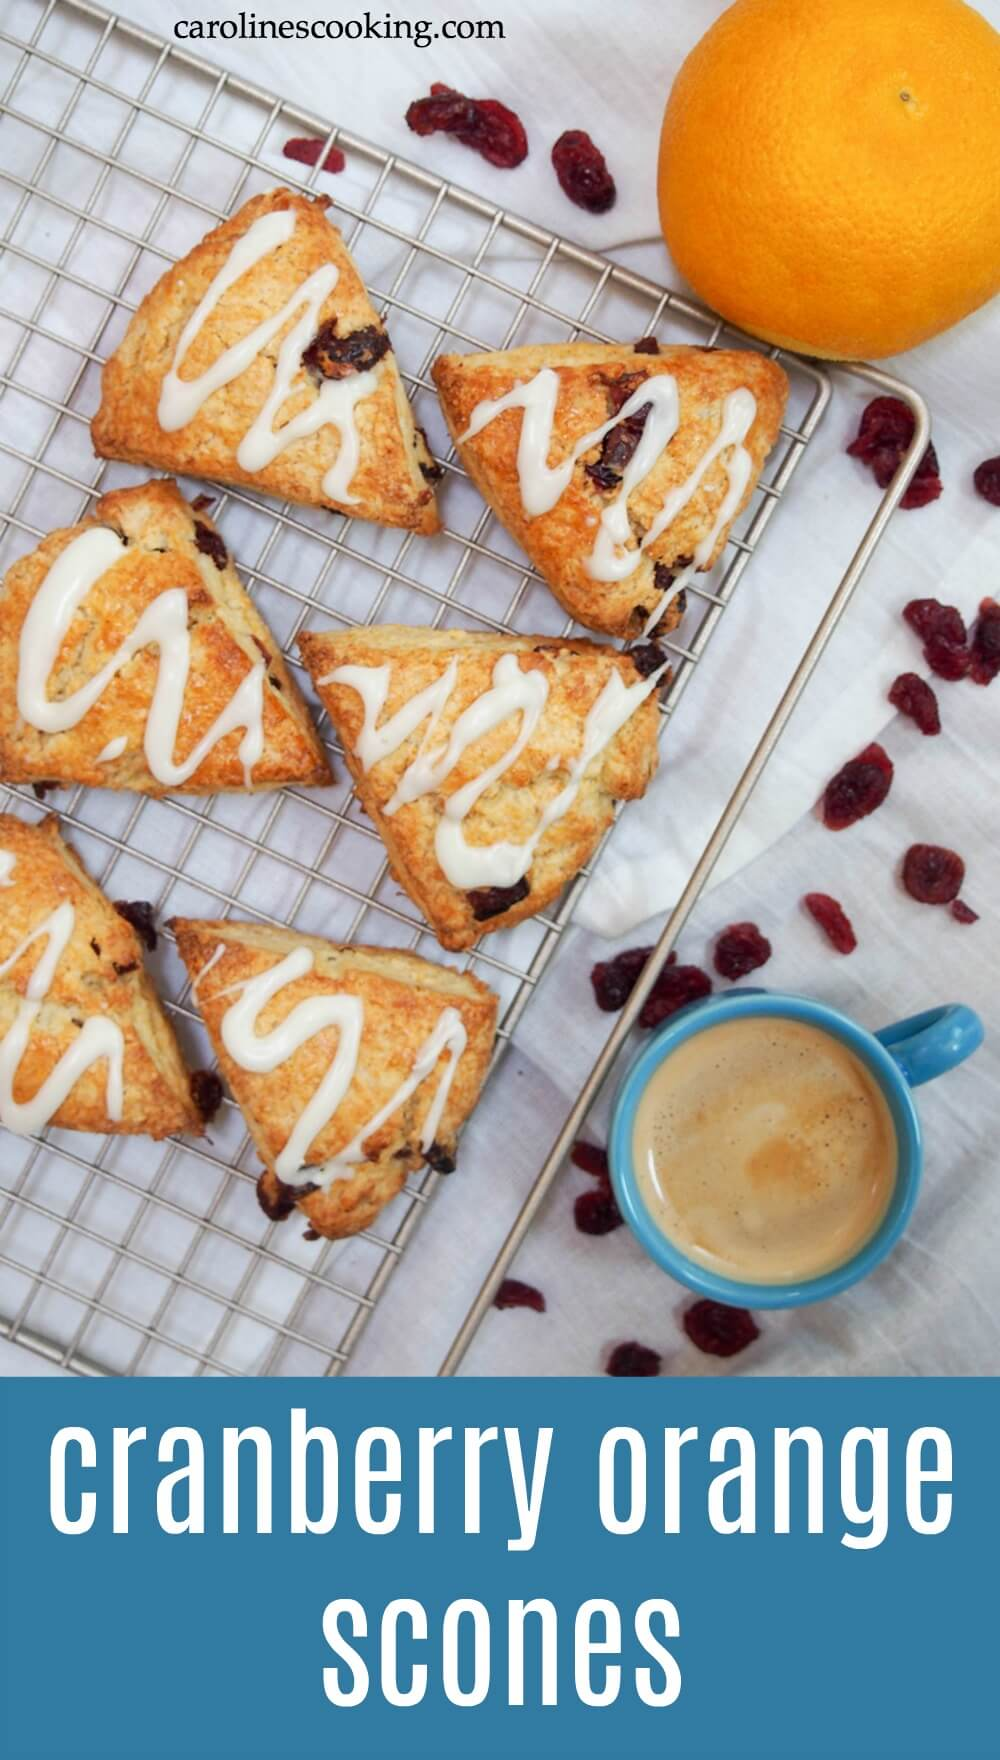 These cranberry orange scones are an easy, tasty treat. With delicate flavors and a tender crumb, they're the perfect snack alongside a cup of coffee or tea. #cranberryweek #scone #baking